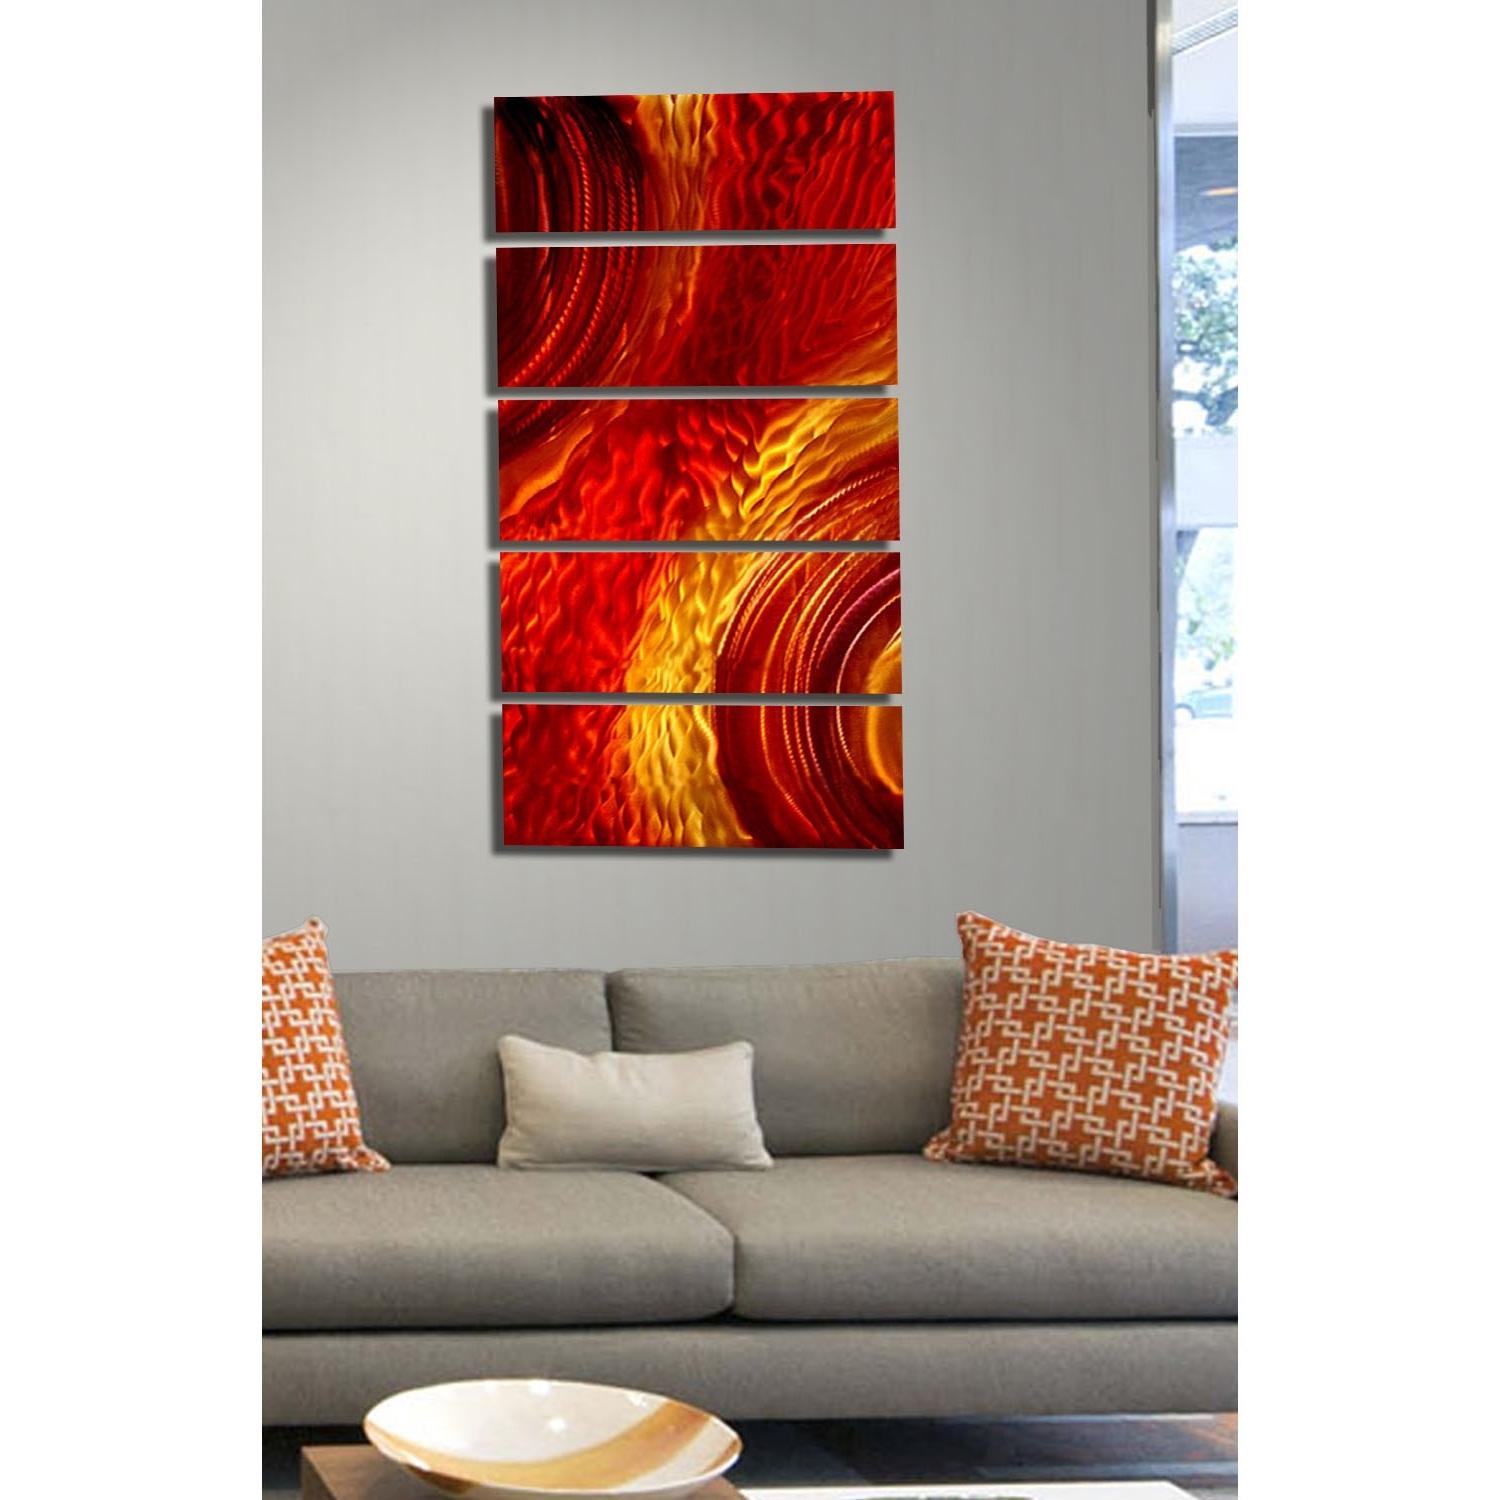 Magma – Red And Gold Metal Wall Art – 5 Panel Wall Décorjon In Preferred Orange Wall Art (View 8 of 15)